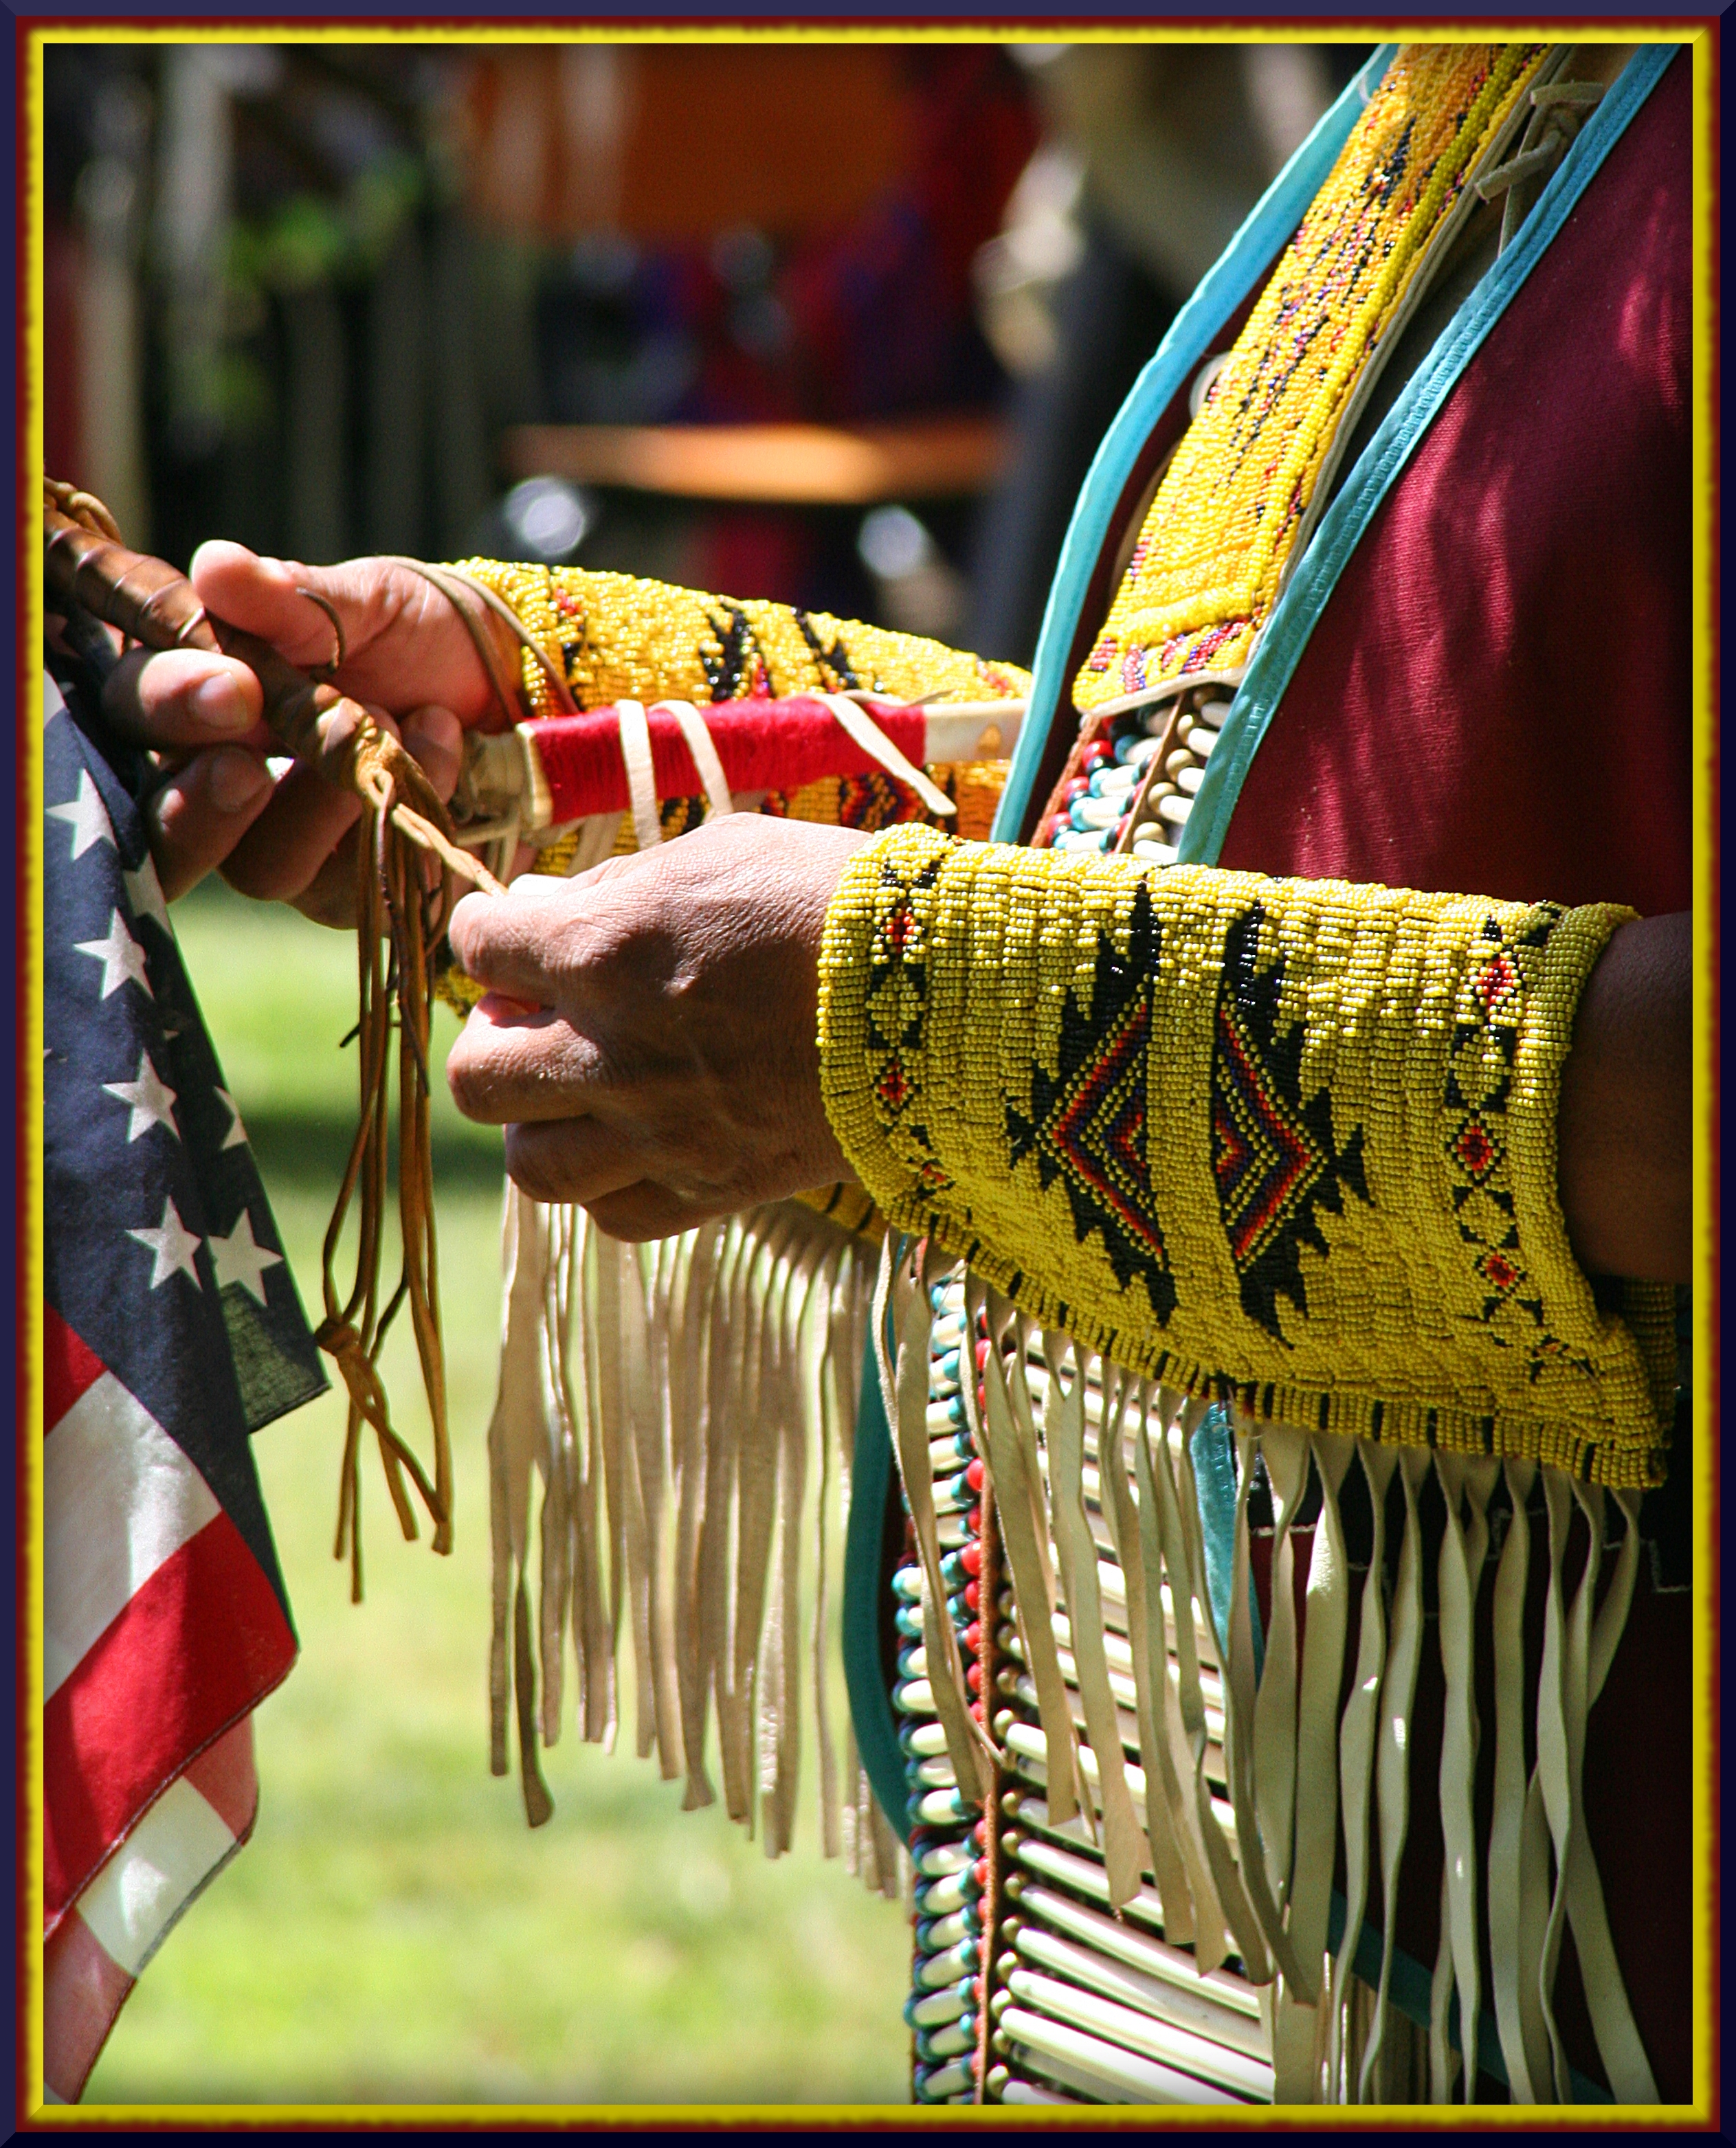 The arms, hands and chest of a Native American are visible, in traditional garb, but the person holds a small American flag.